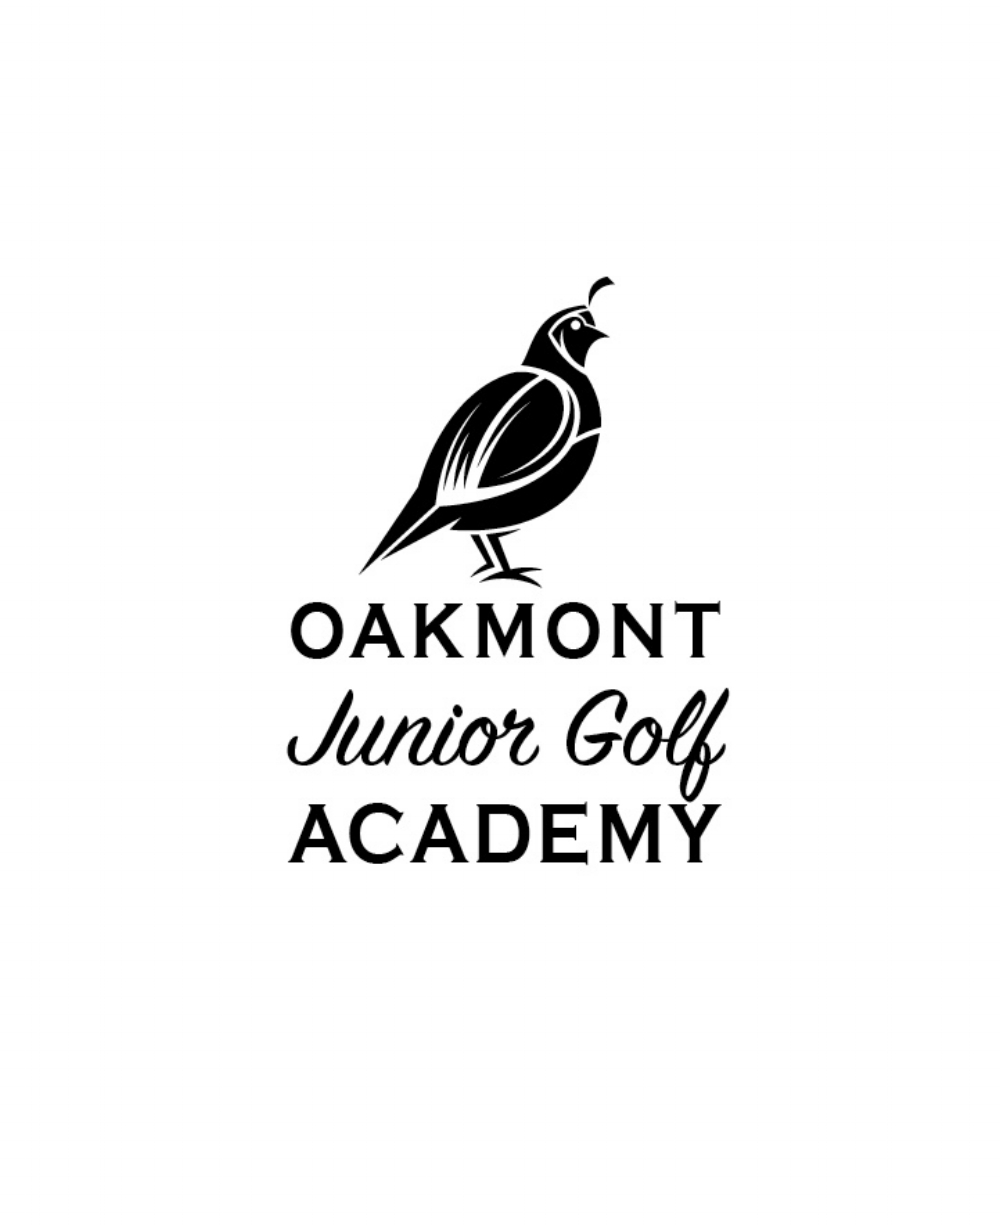 Oakmont Junior Golf Academy